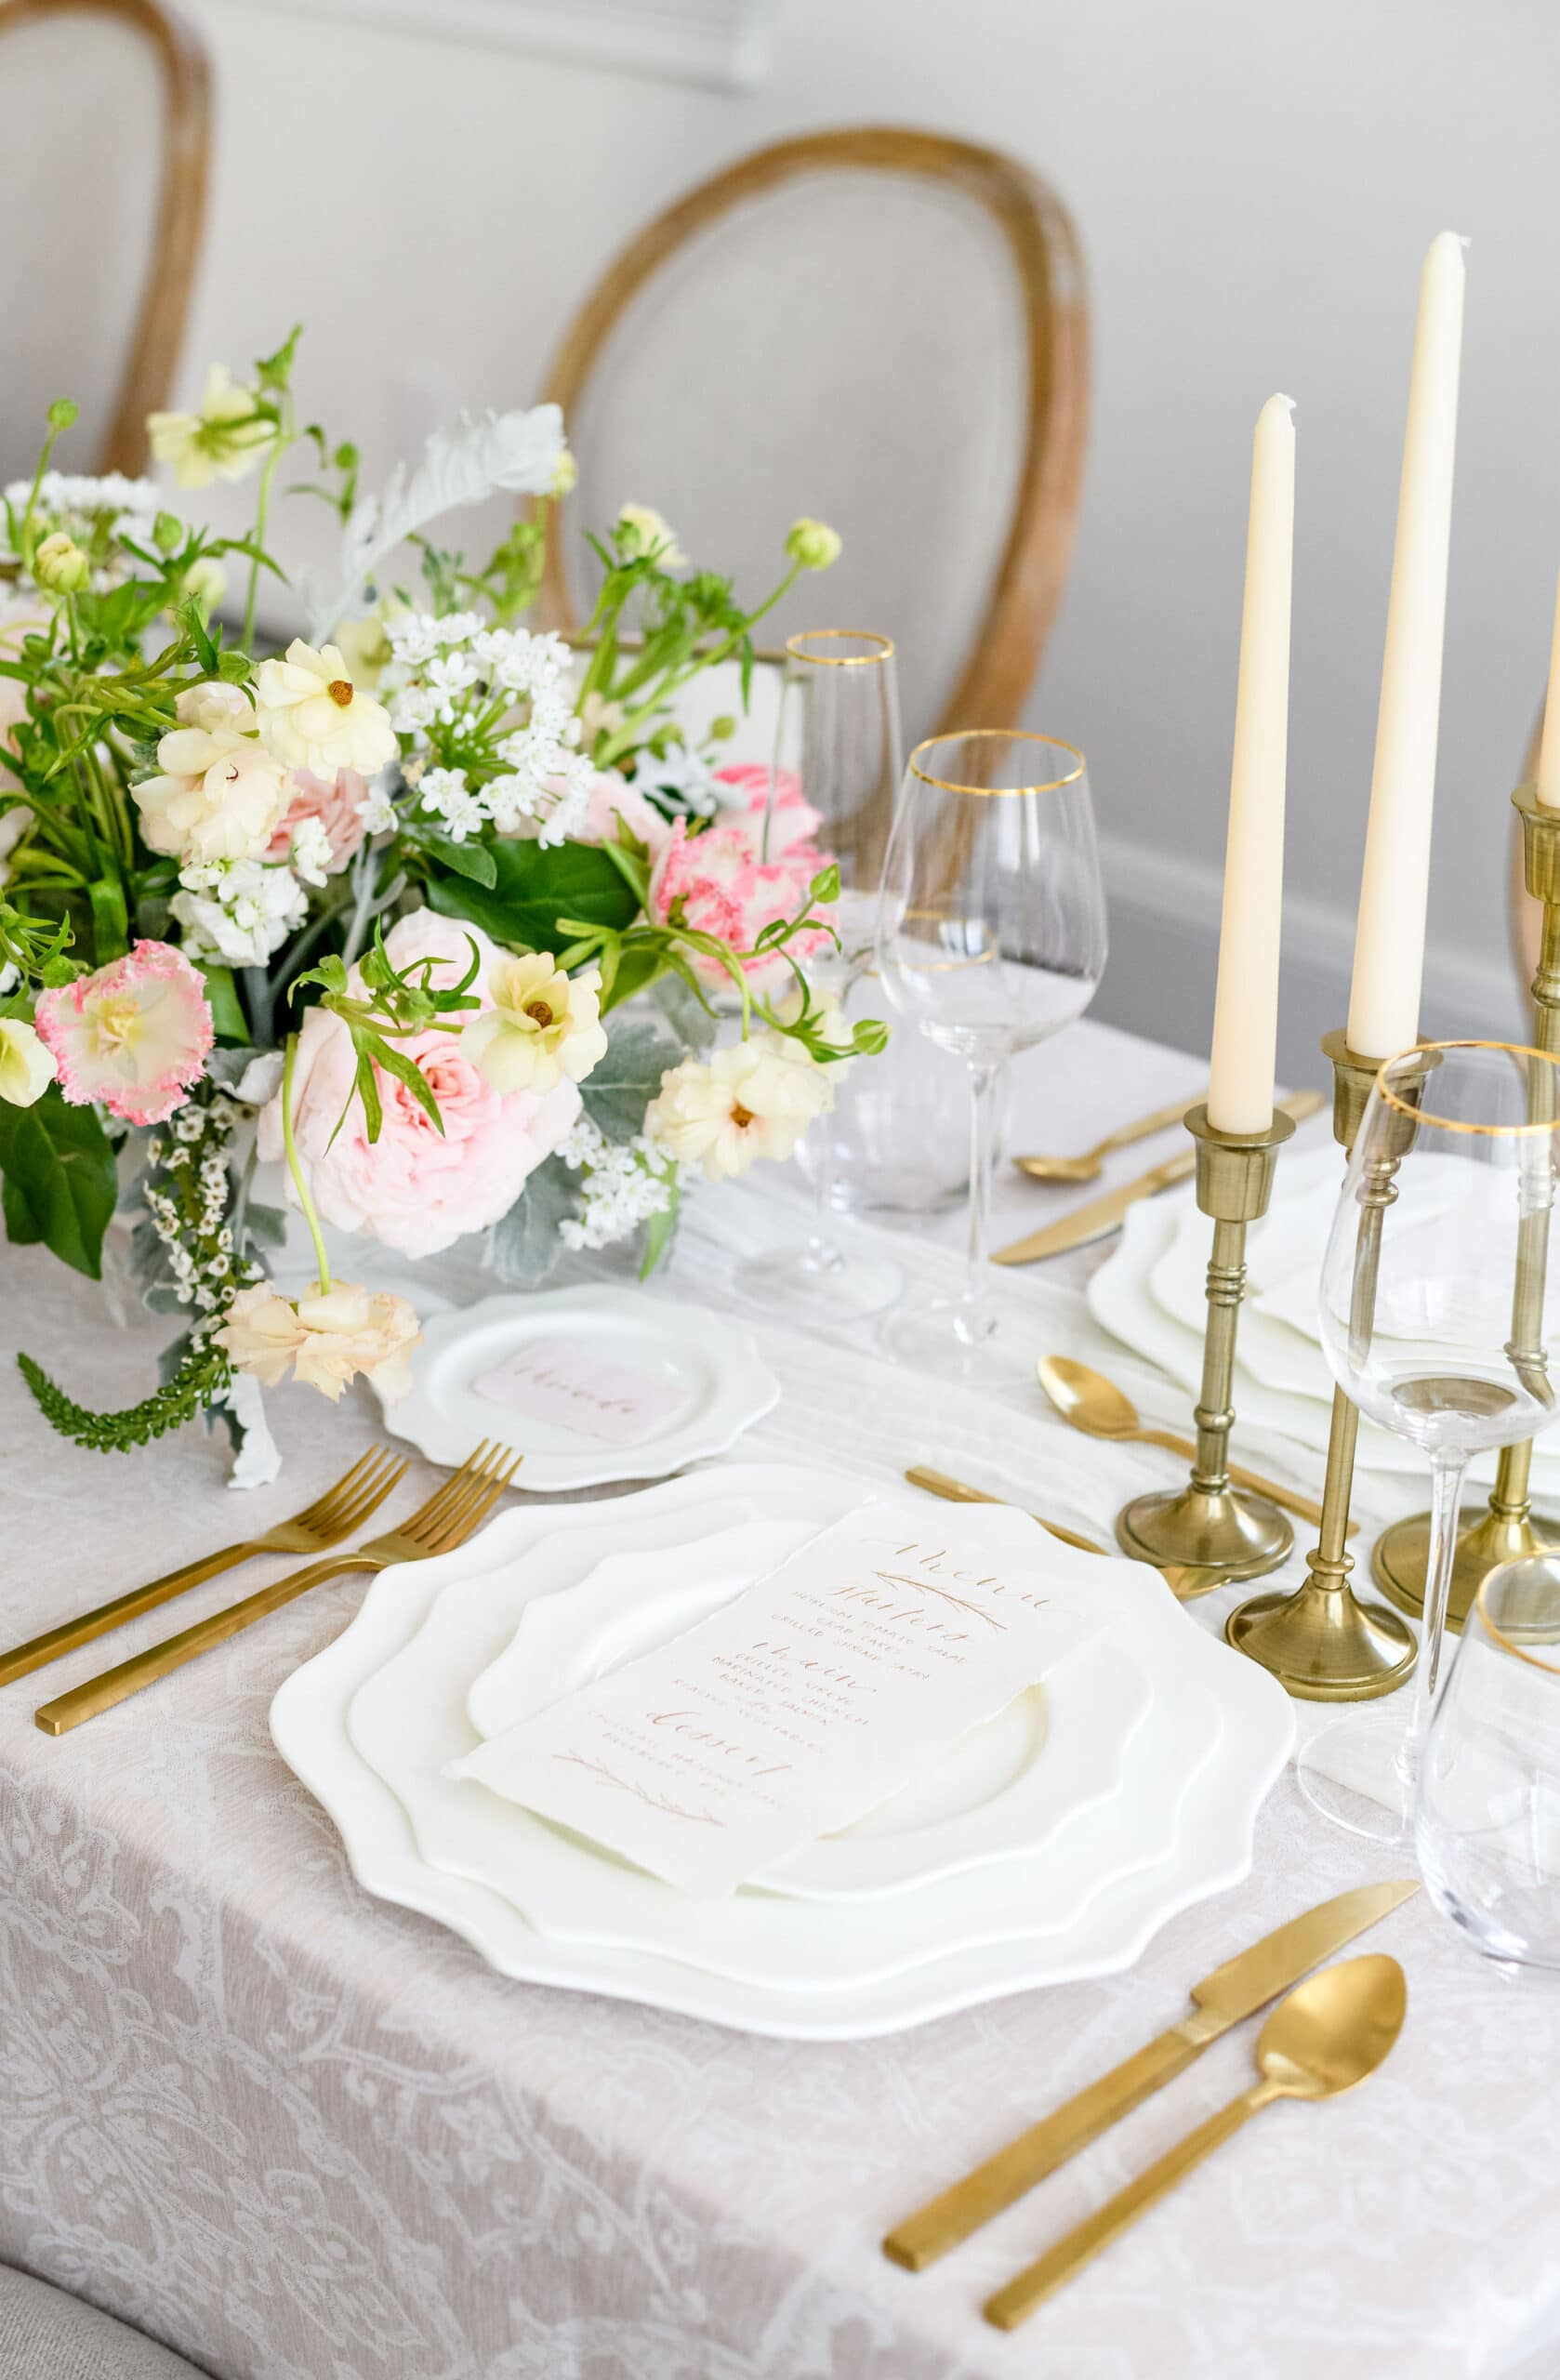 Contact Lovely Luxe Rentals